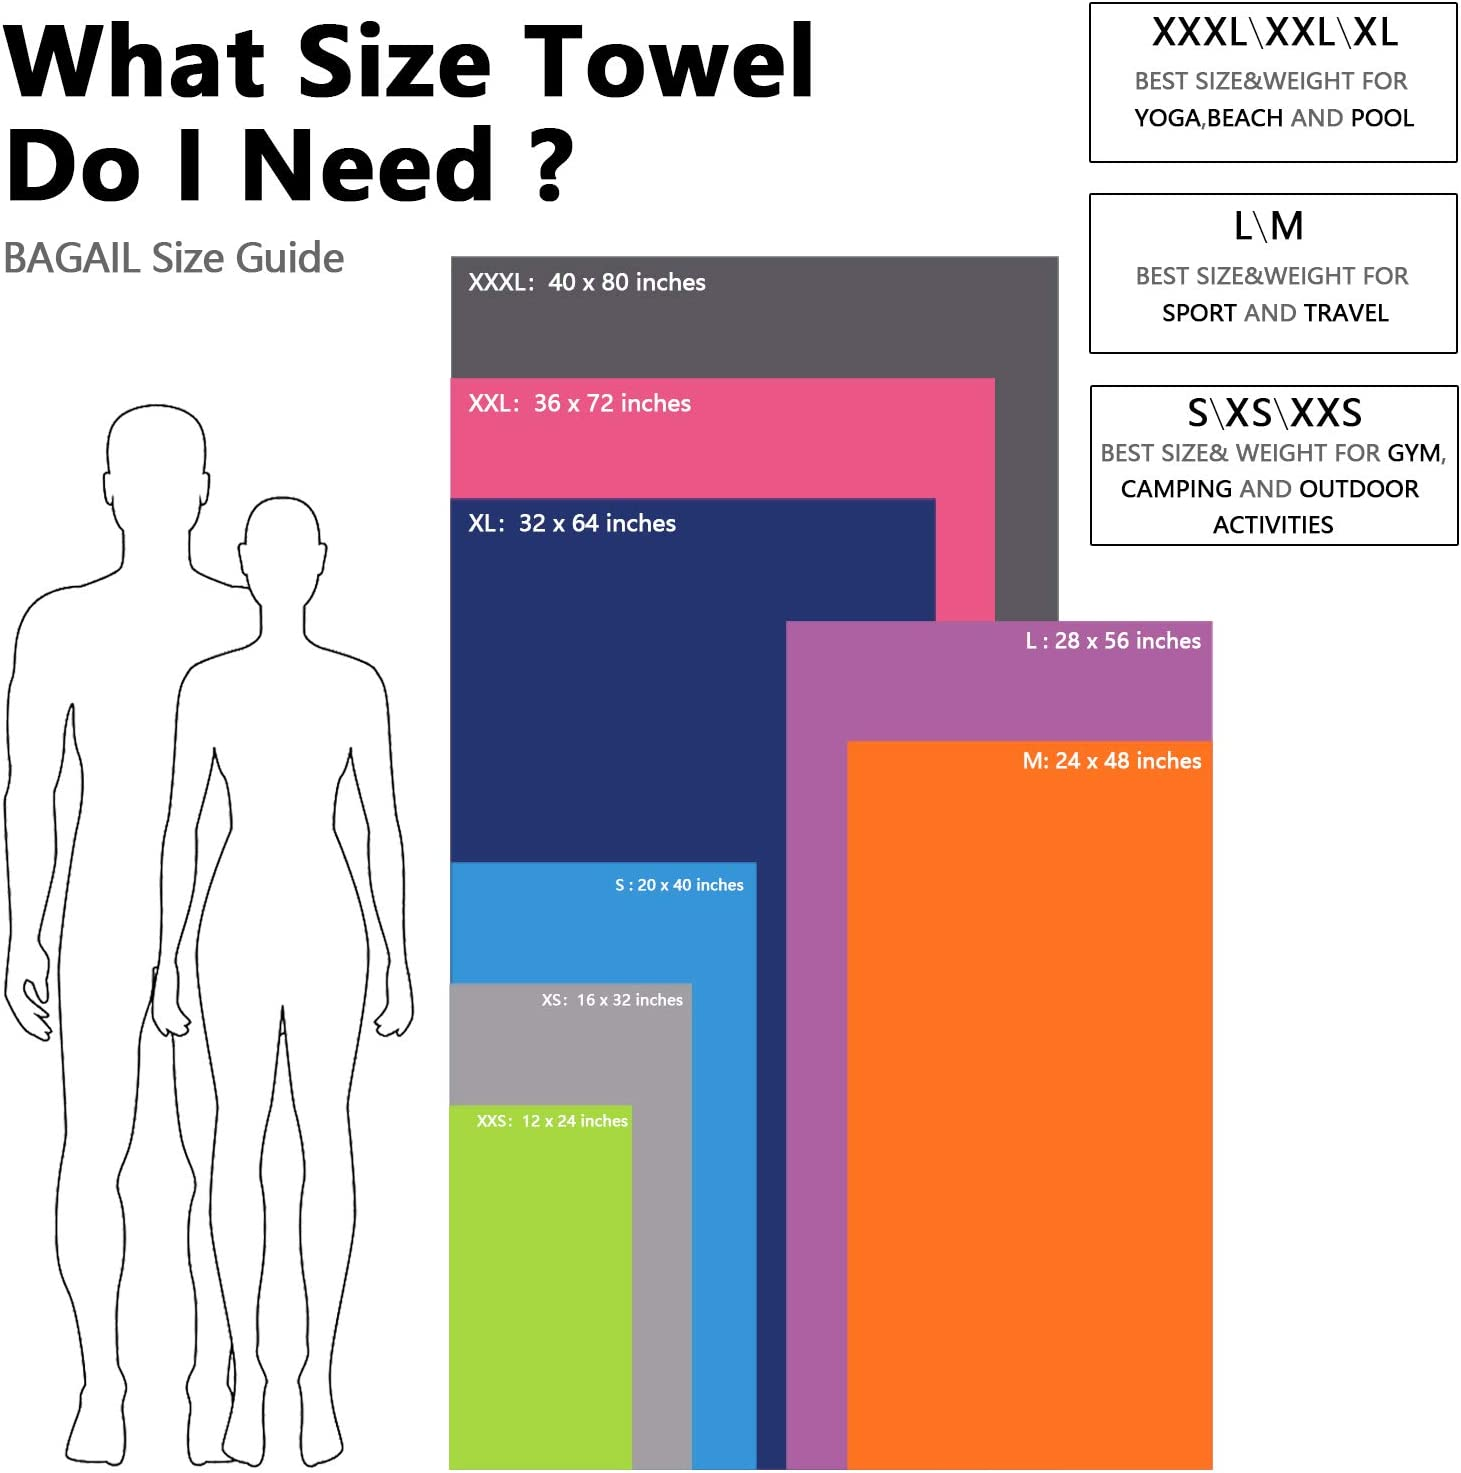 BAGAIL Basics Microfiber Towel Perfect Sports /& Travel /& Beach Towel Fast Drying Super Absorbent Beach Swimming Ultra Compact Gym Backpacking Blue 12 x 24 inches Suitable for Camping